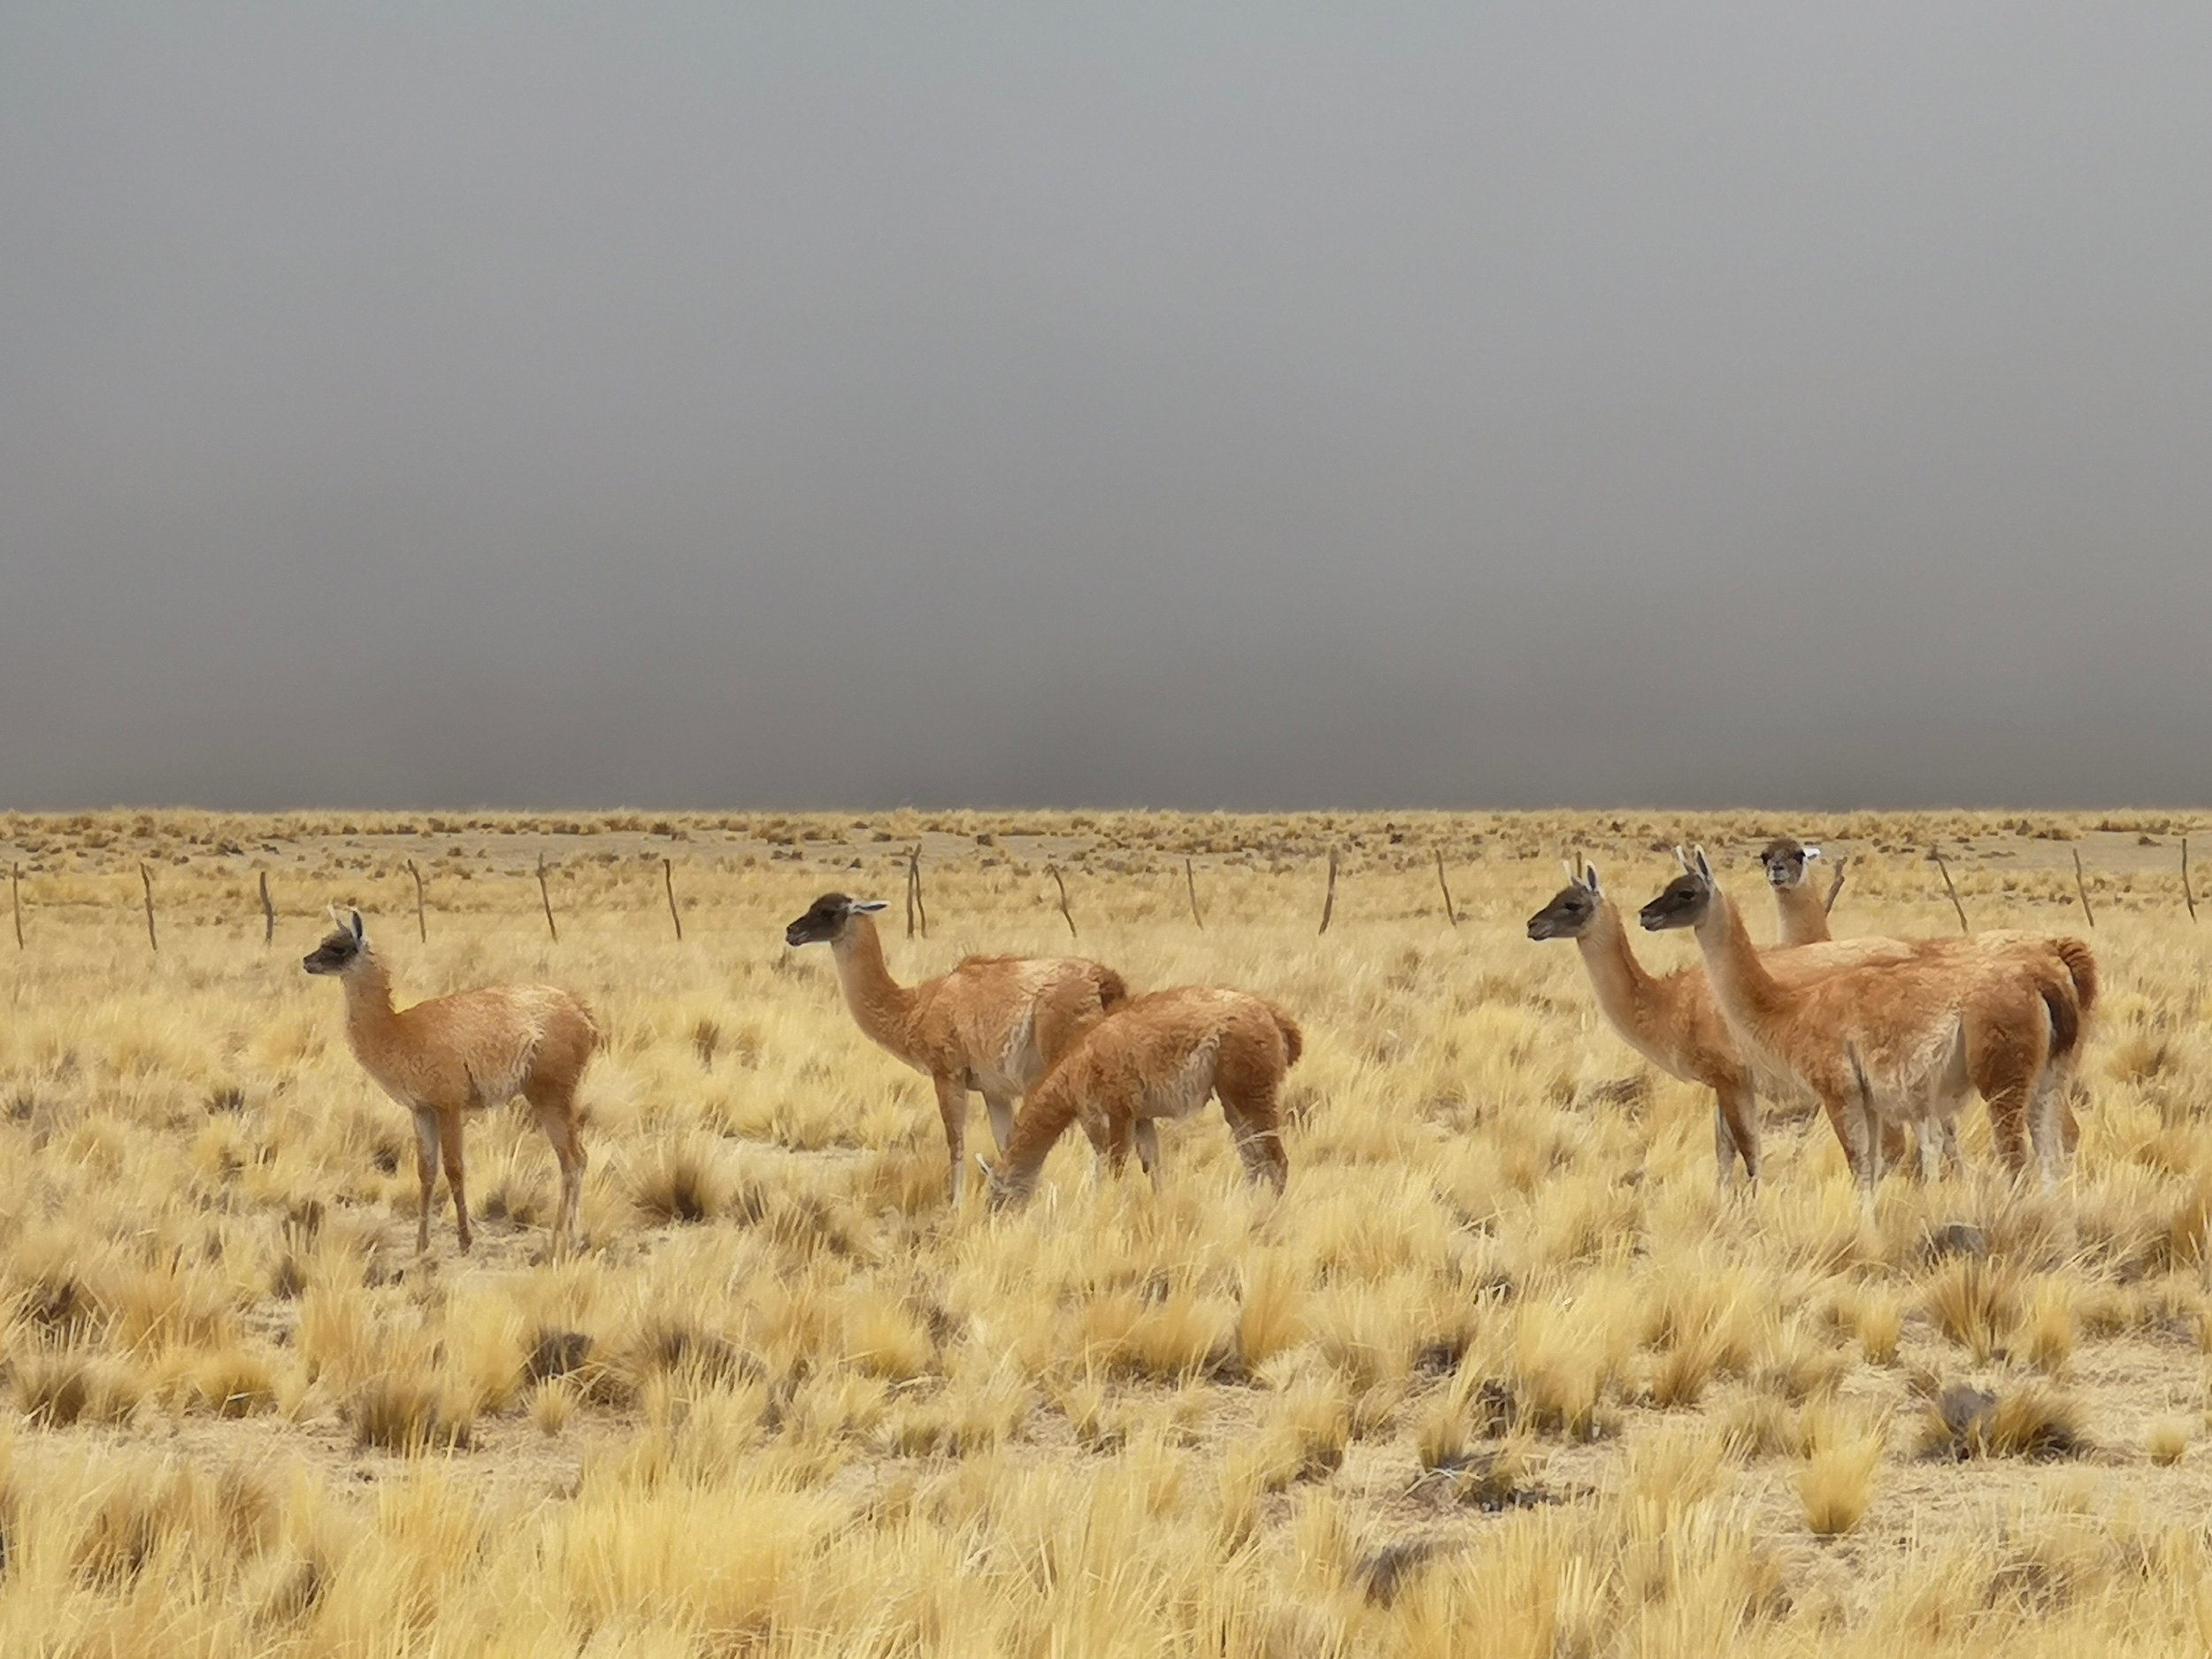 23a. Vicunas on the plain - The Grown Up Edit.jpg